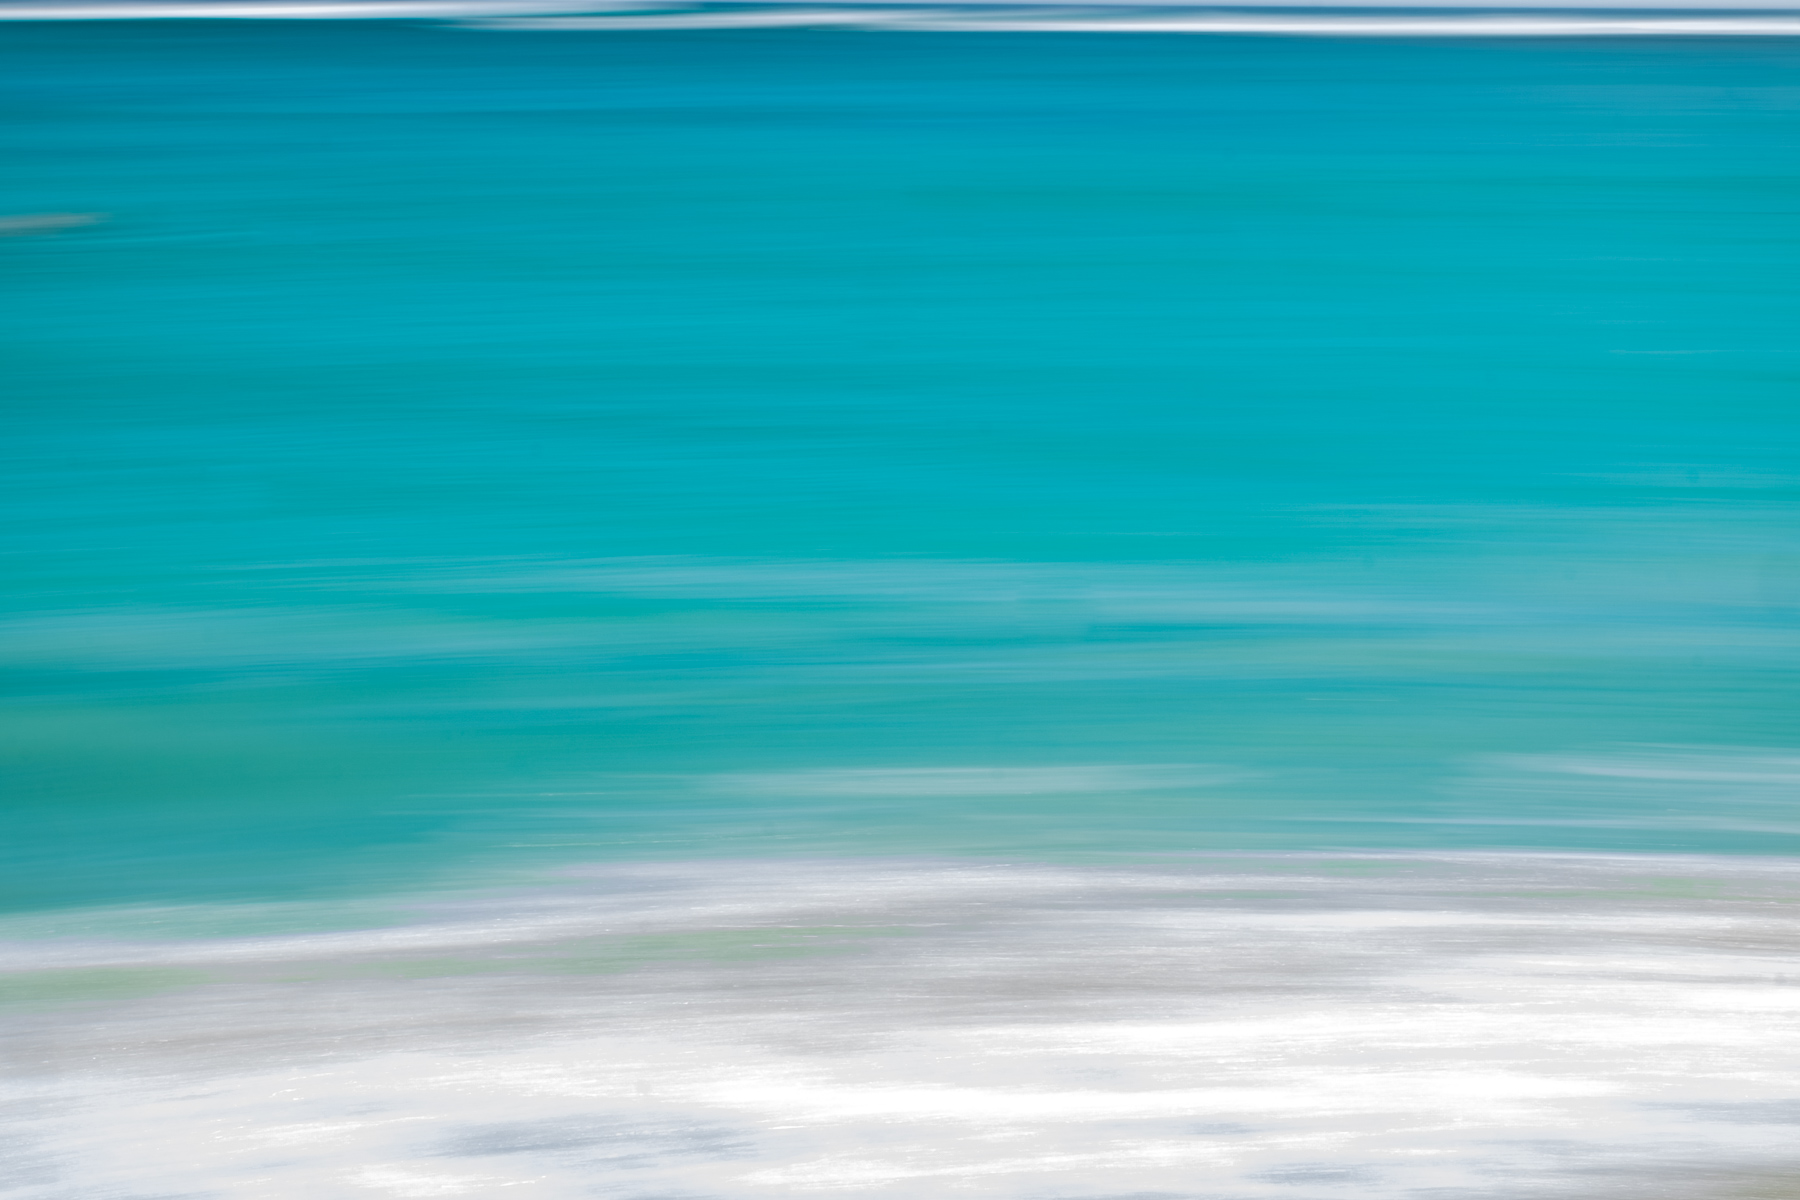 Catherine Li, Indian Ocean, Mauritius, Ocean Indien, Sea Series, abstract, art photography, blue, fine art photography, ile Maurice, ocean, sea, turquoise, waves